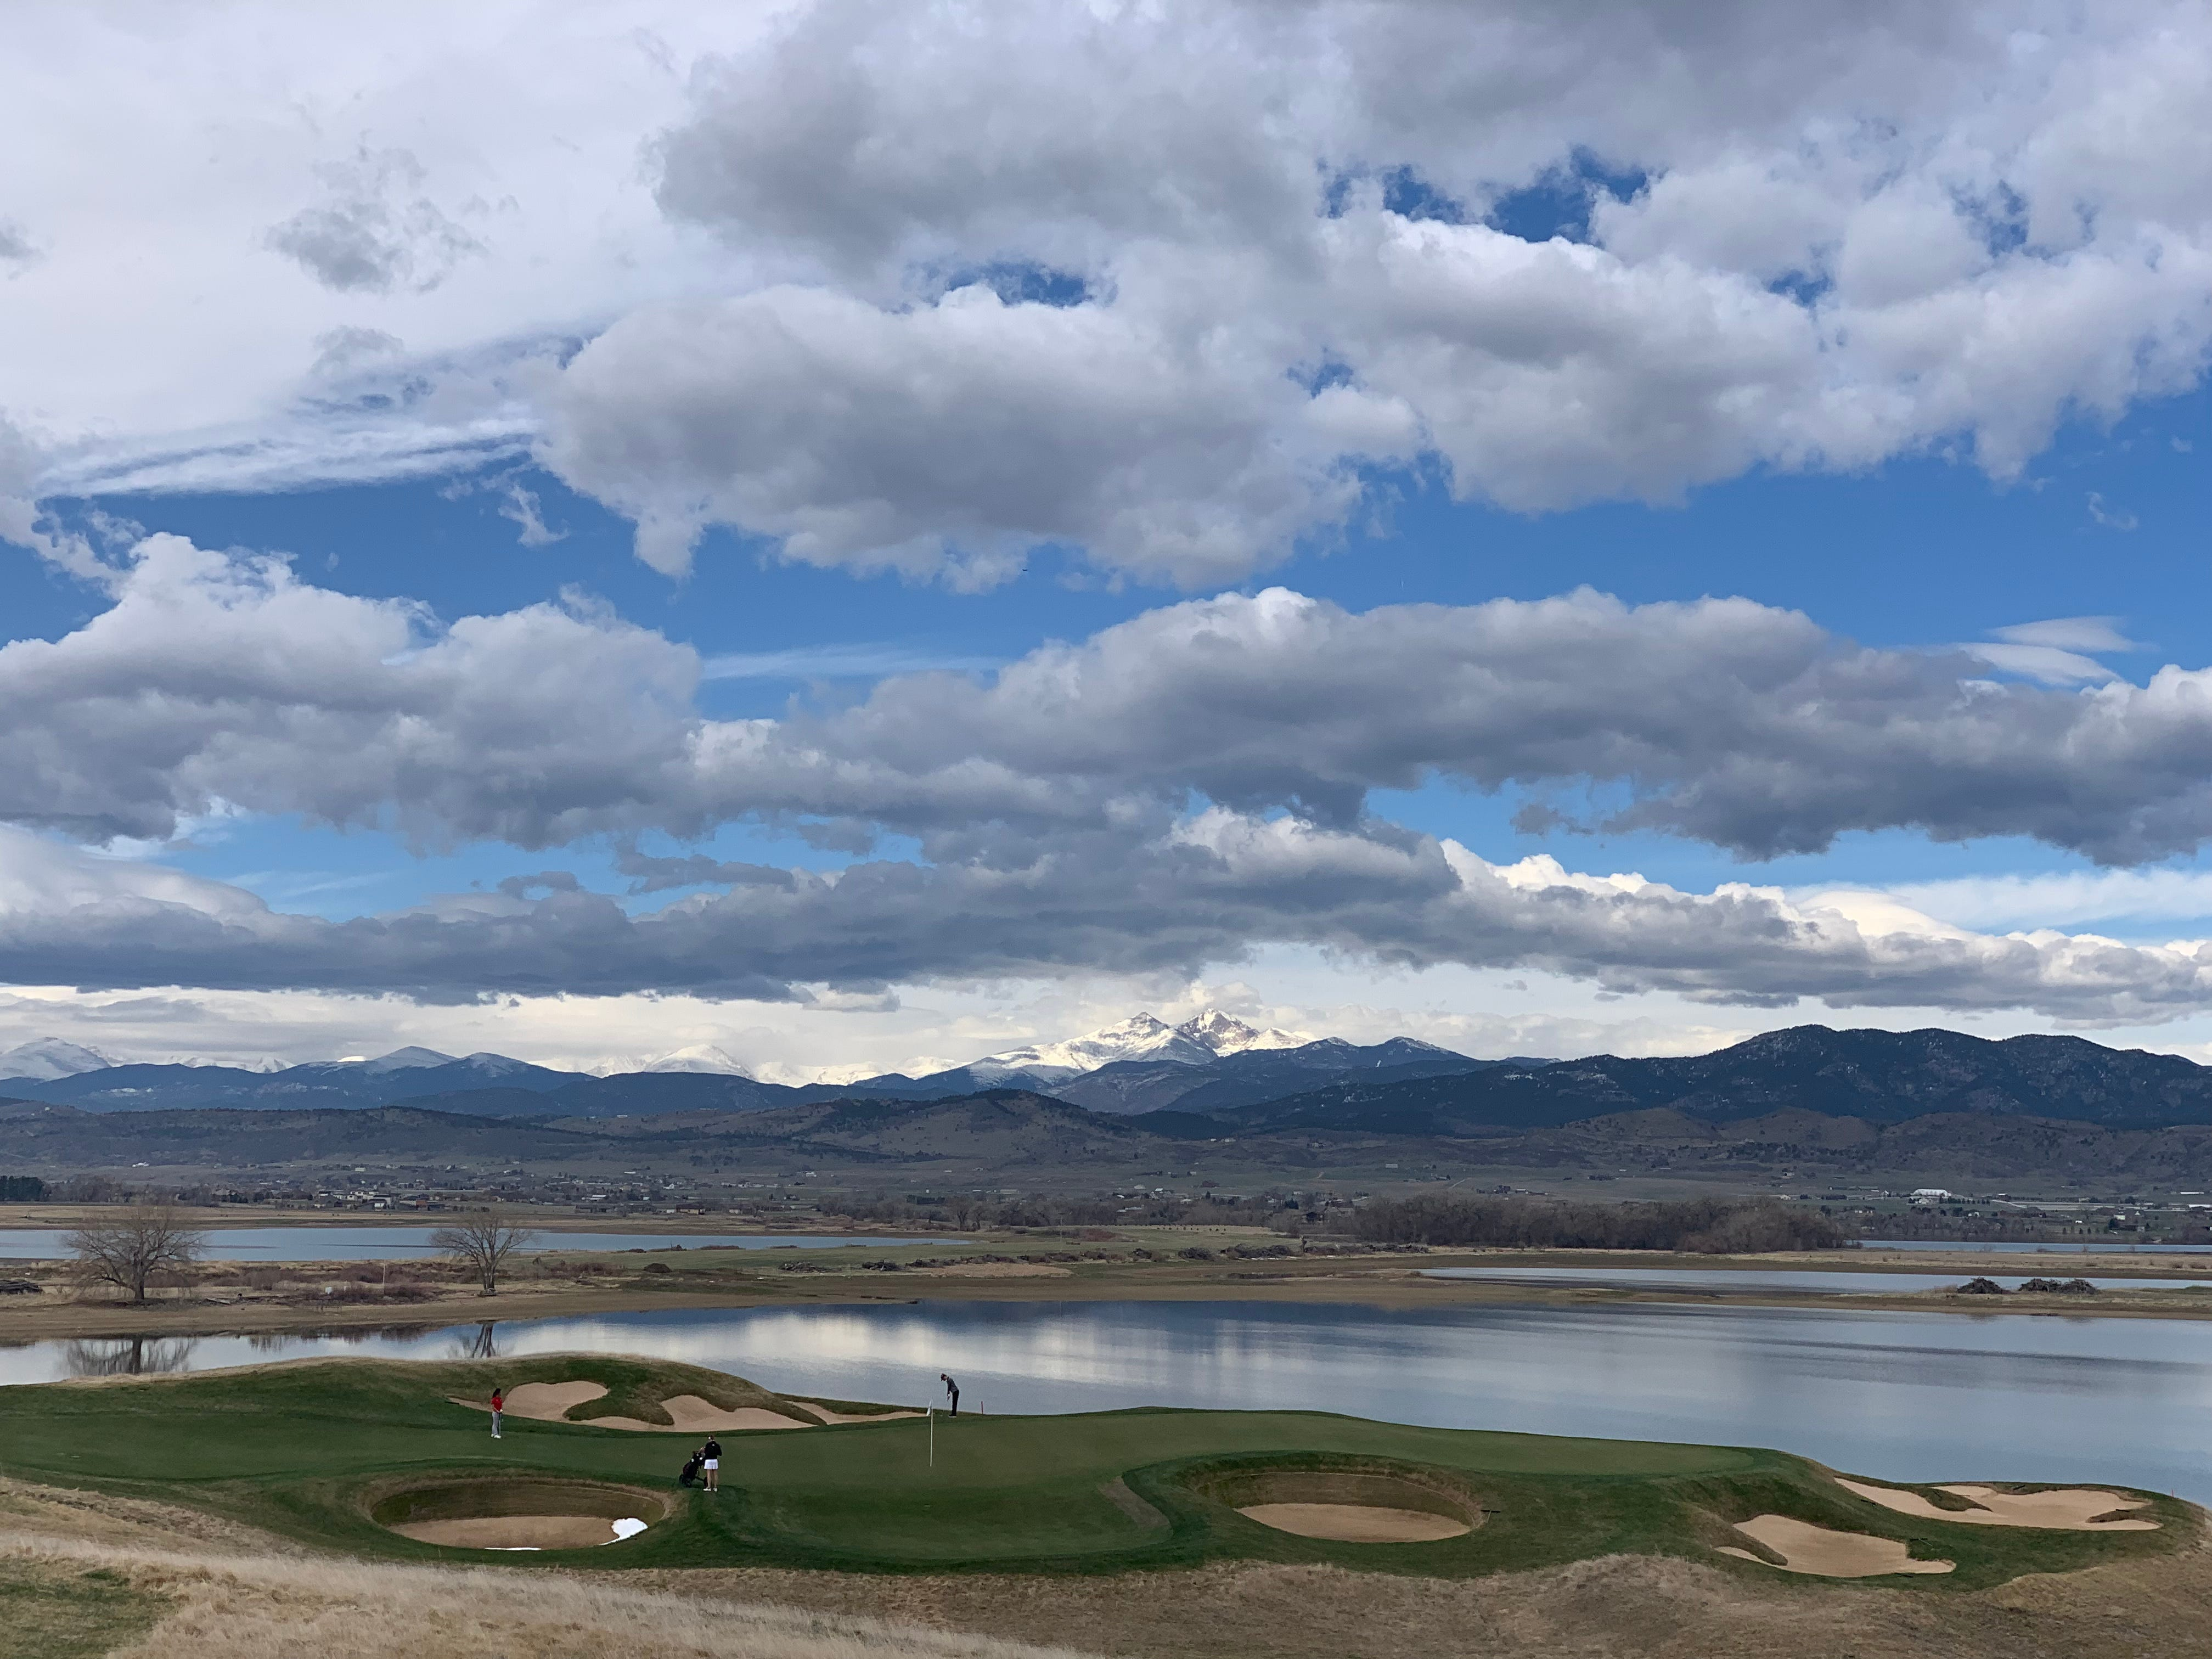 The scenic hole No. 16 at TPC Colorado in Berthoud.